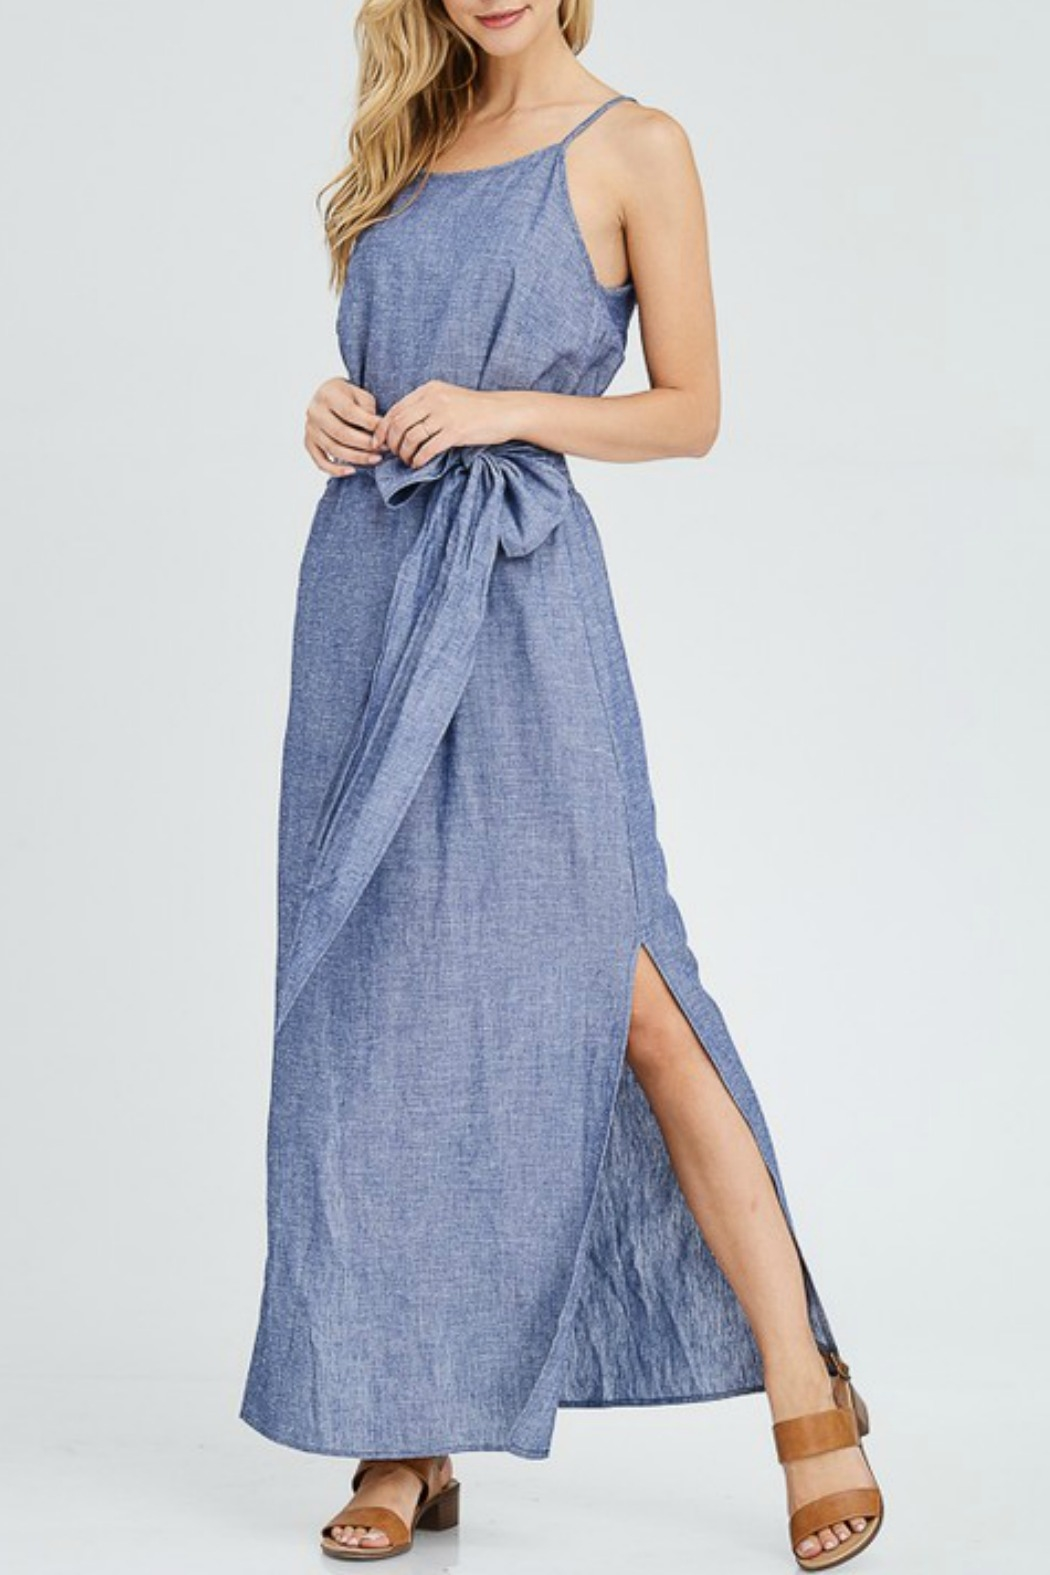 38c3066ca4 Jolie Chambray Maxi Dress from Louisiana by Bella Bella - Metairie ...